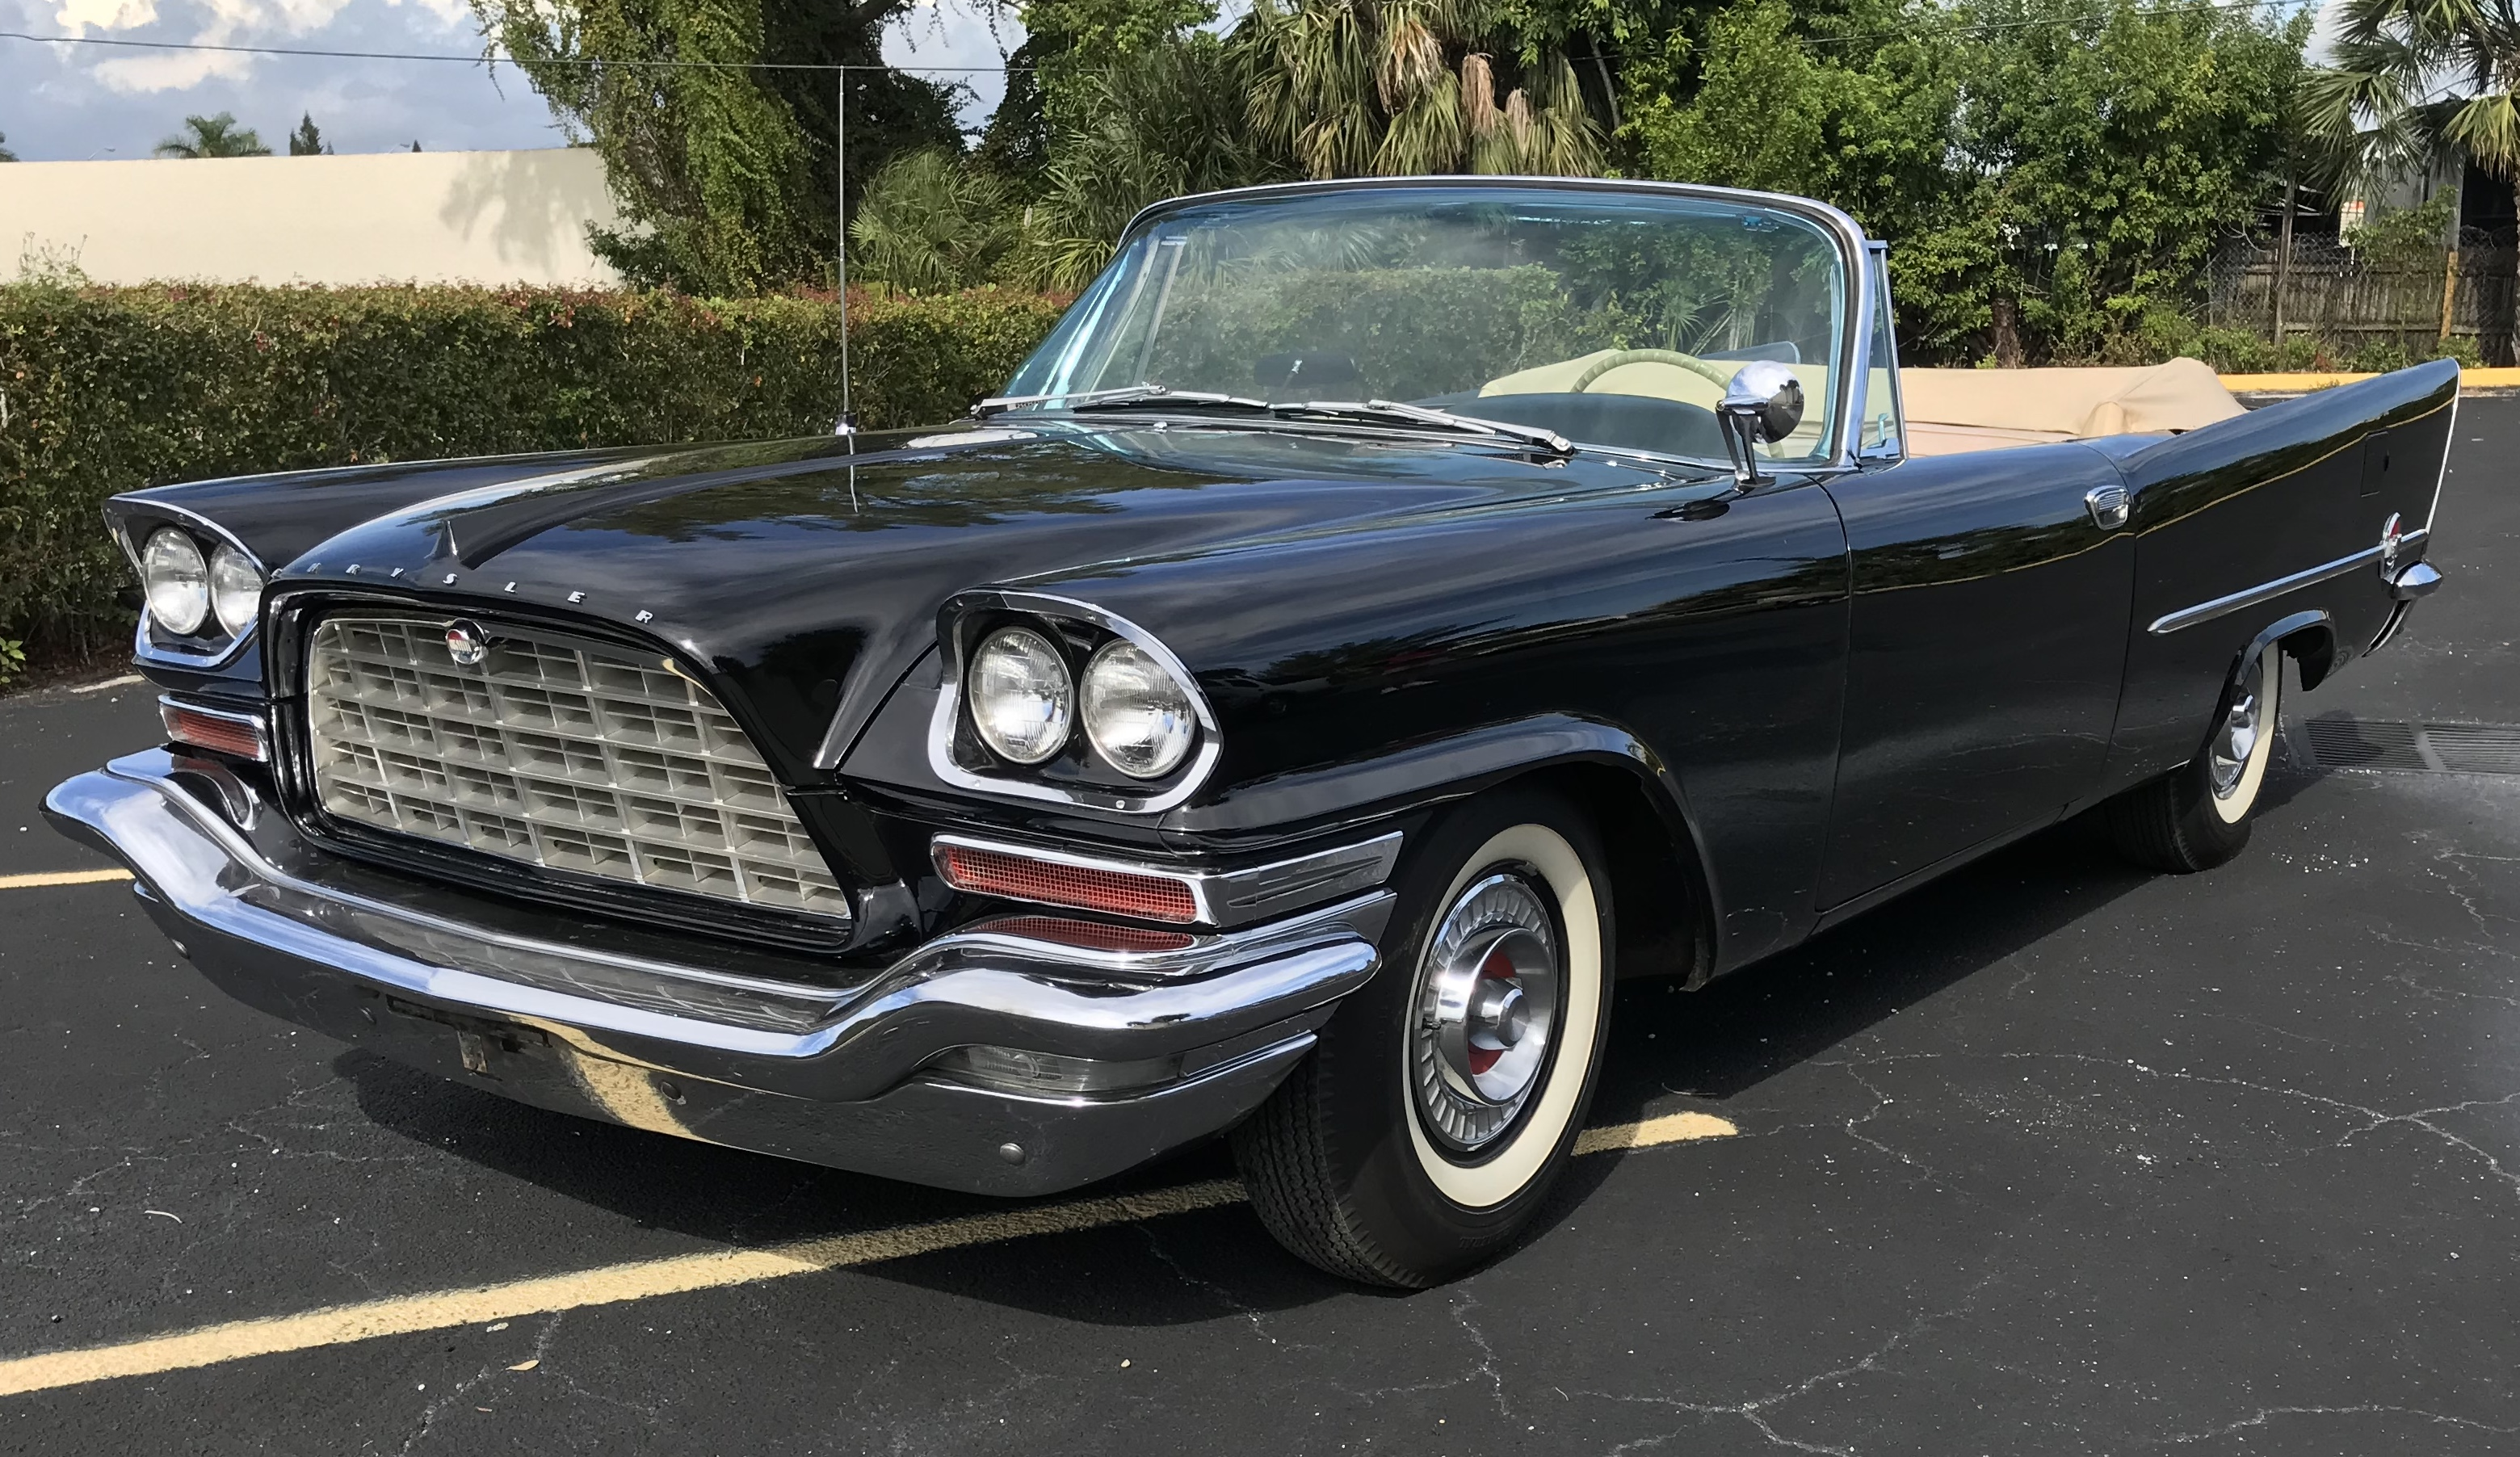 Ft Lauderdale Beach Collector Car Auction Presented By Dave Rupp 1949 Chrysler Crown Imperial Available